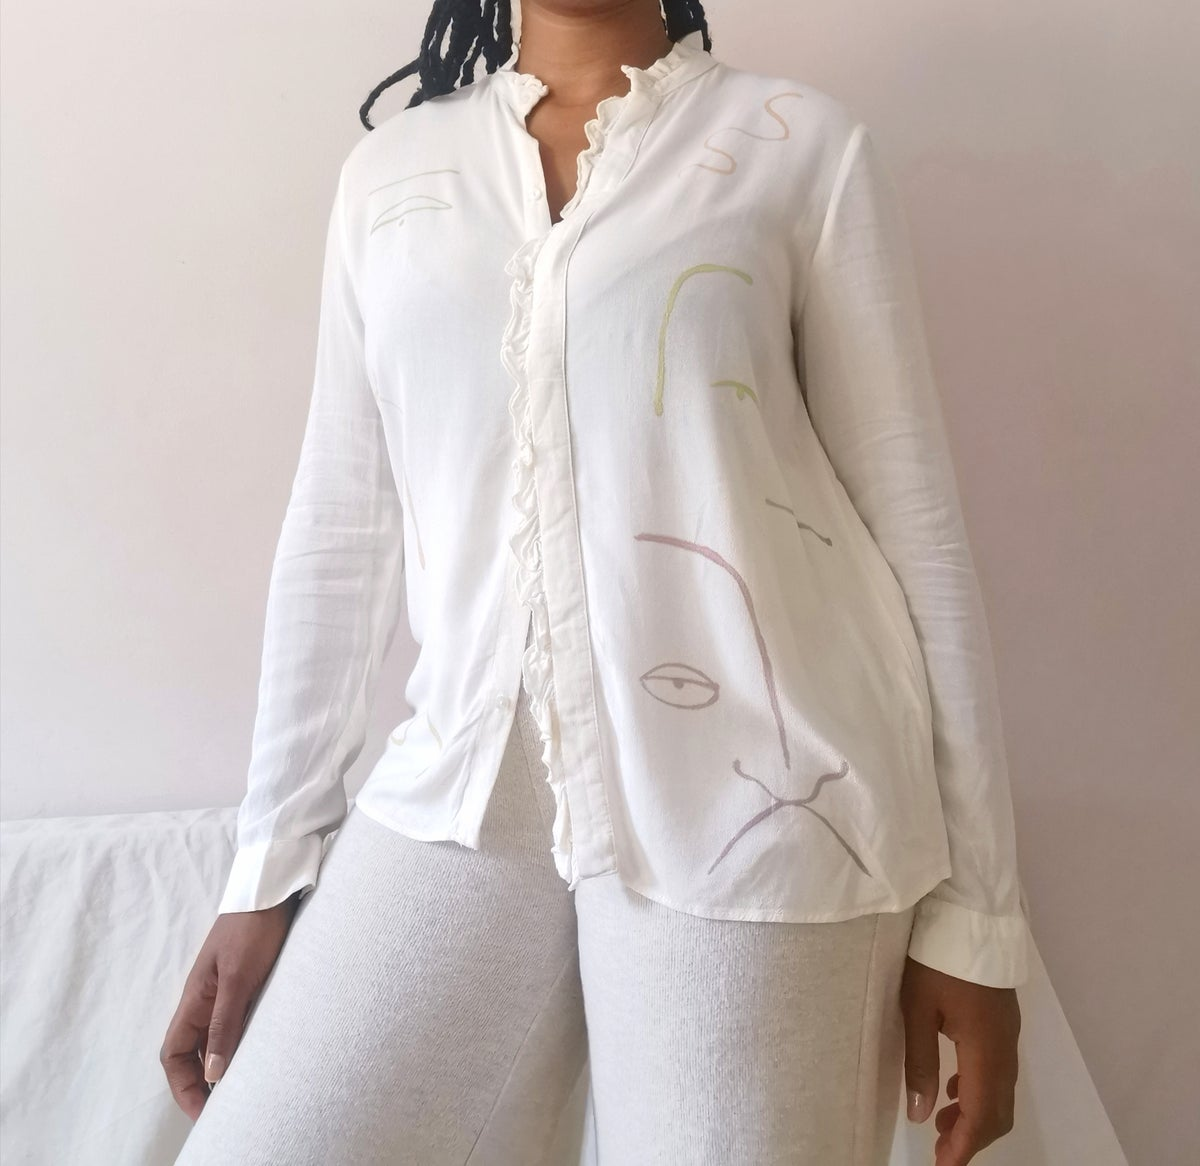 Image of muted pastel blouse